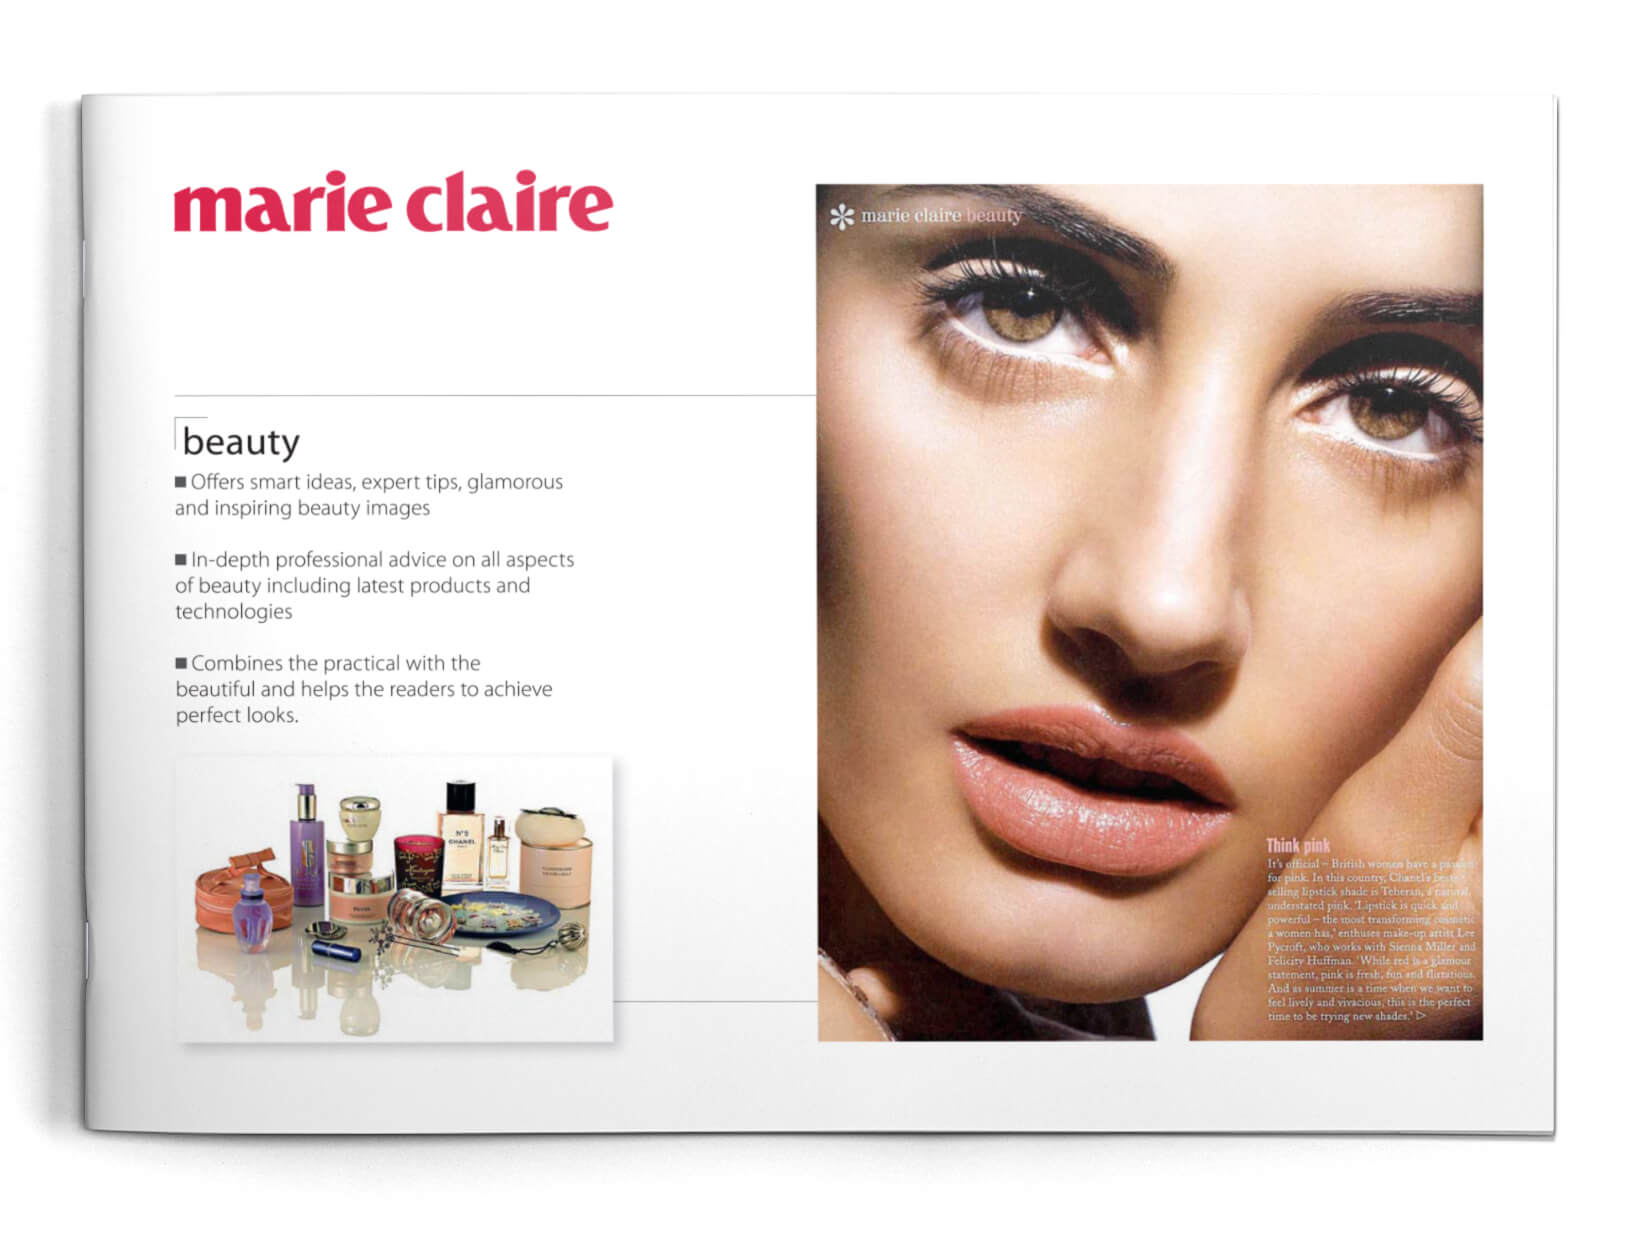 mediakit-marieclaire-cover-4